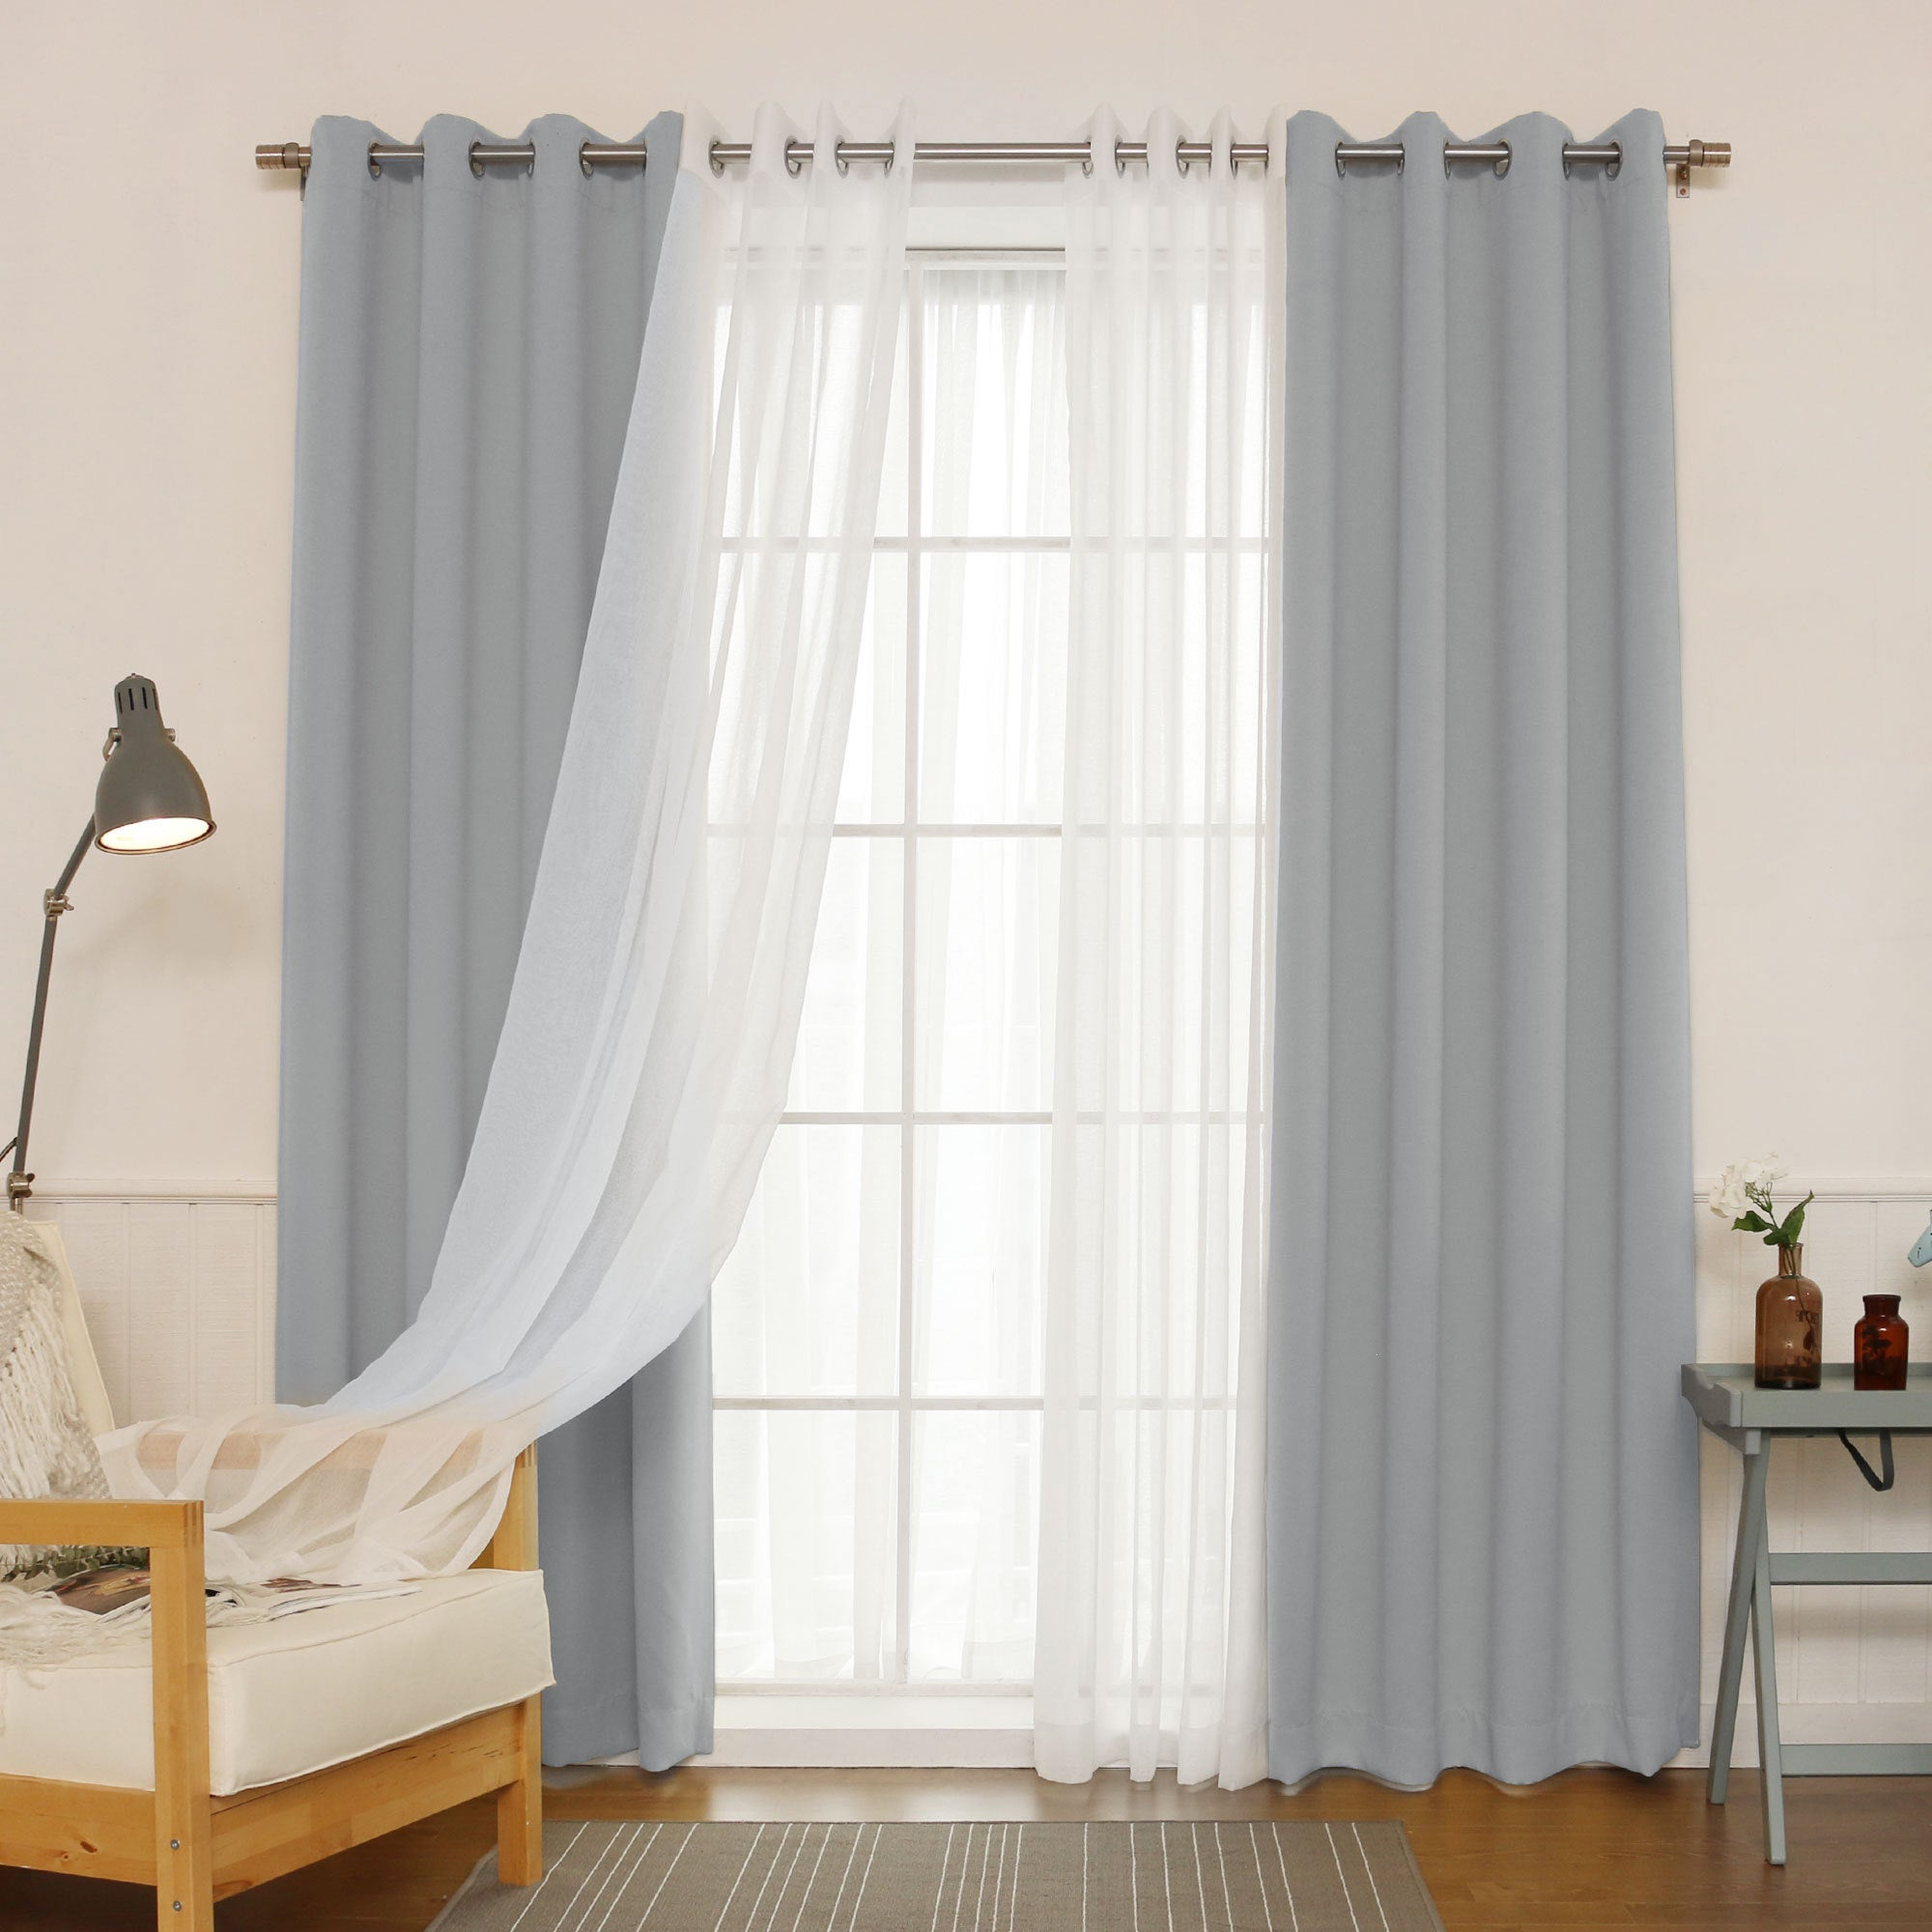 panels curtain products poly kids blackout bedroom satin nursery inch of x curtains window print for a baby set plane fabric toddler aero or